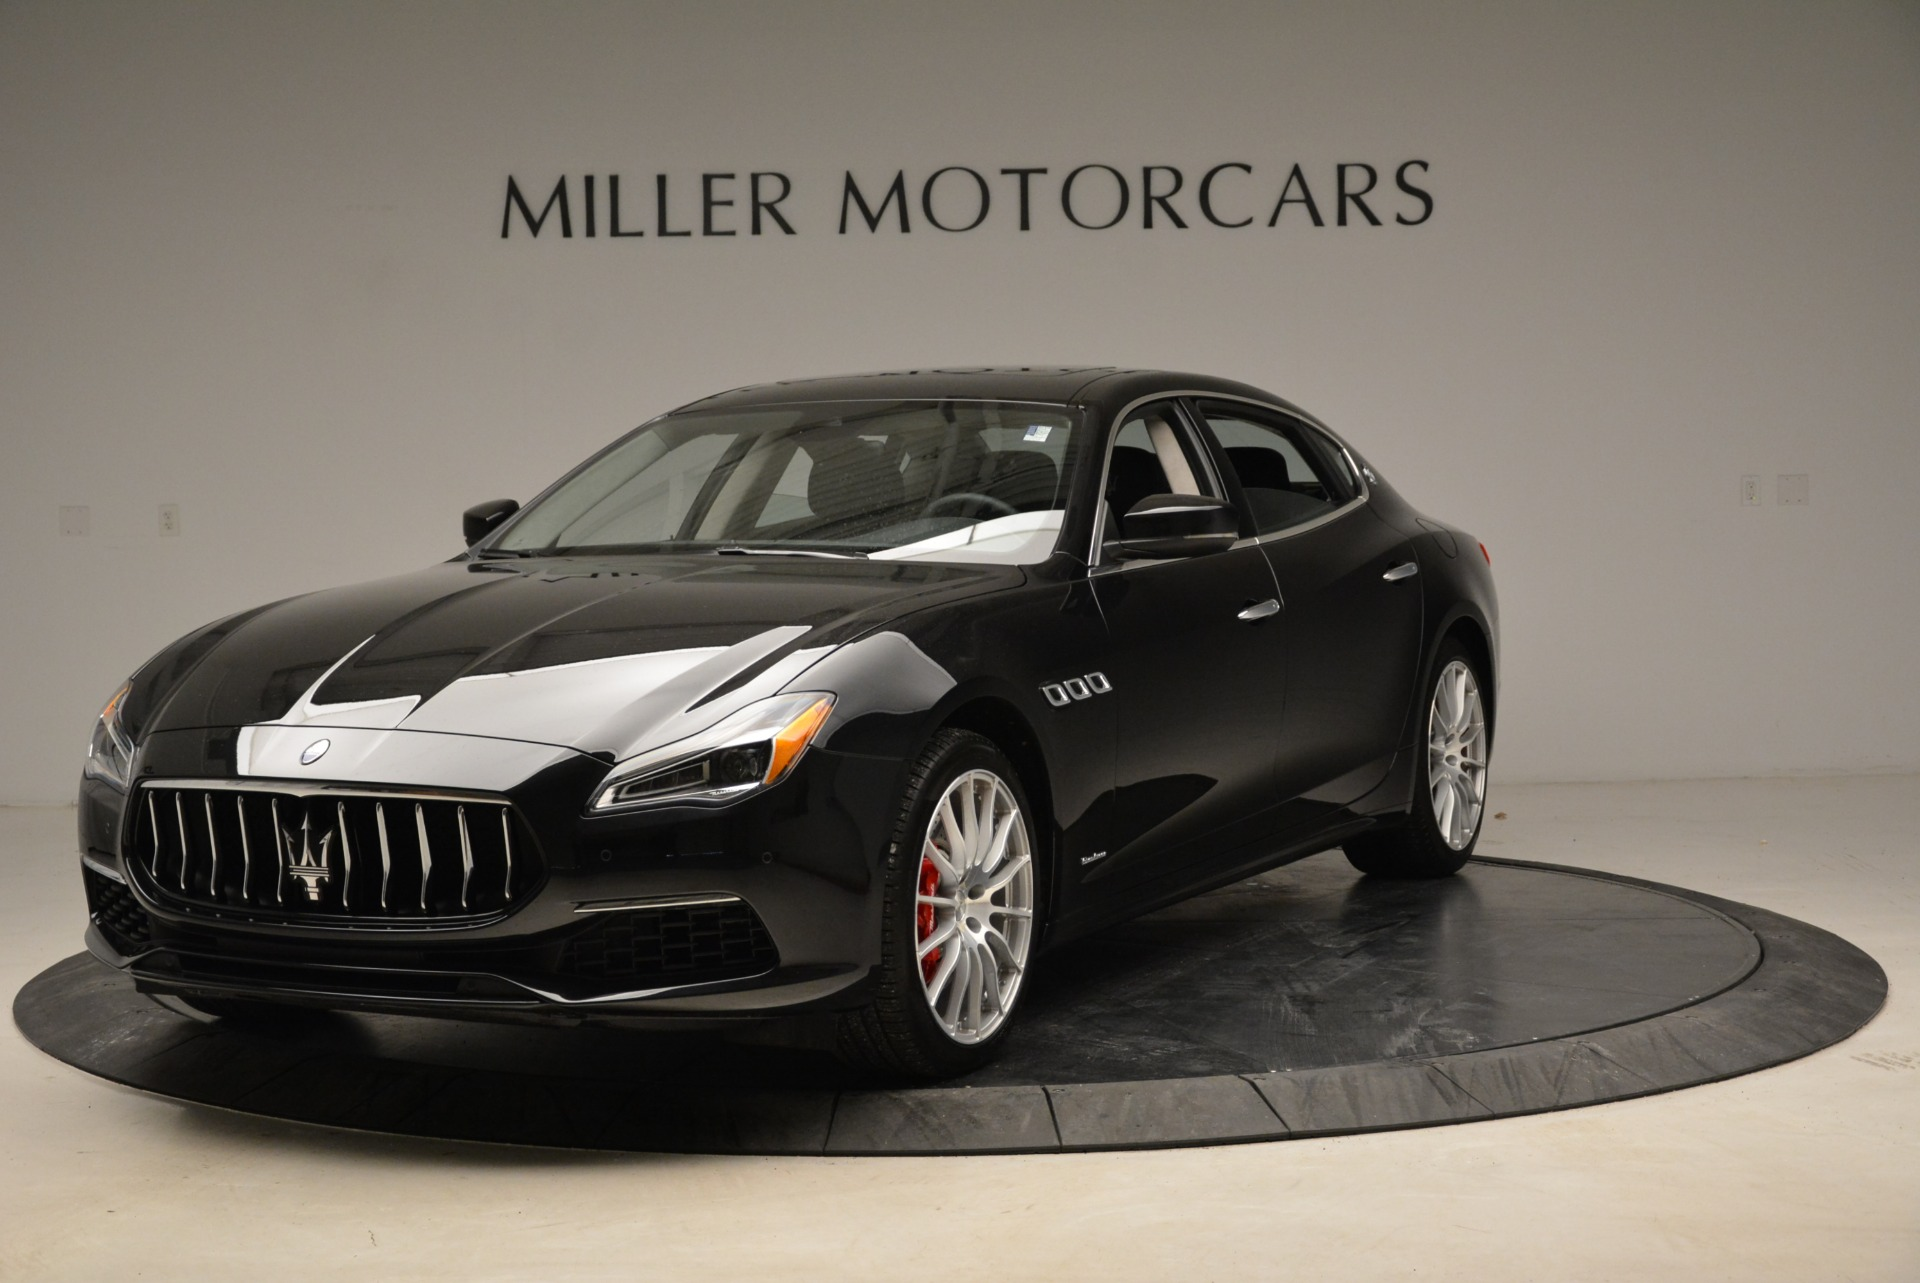 New 2018 Maserati Quattroporte S Q4 GranLusso For Sale In Westport, CT 2386_main